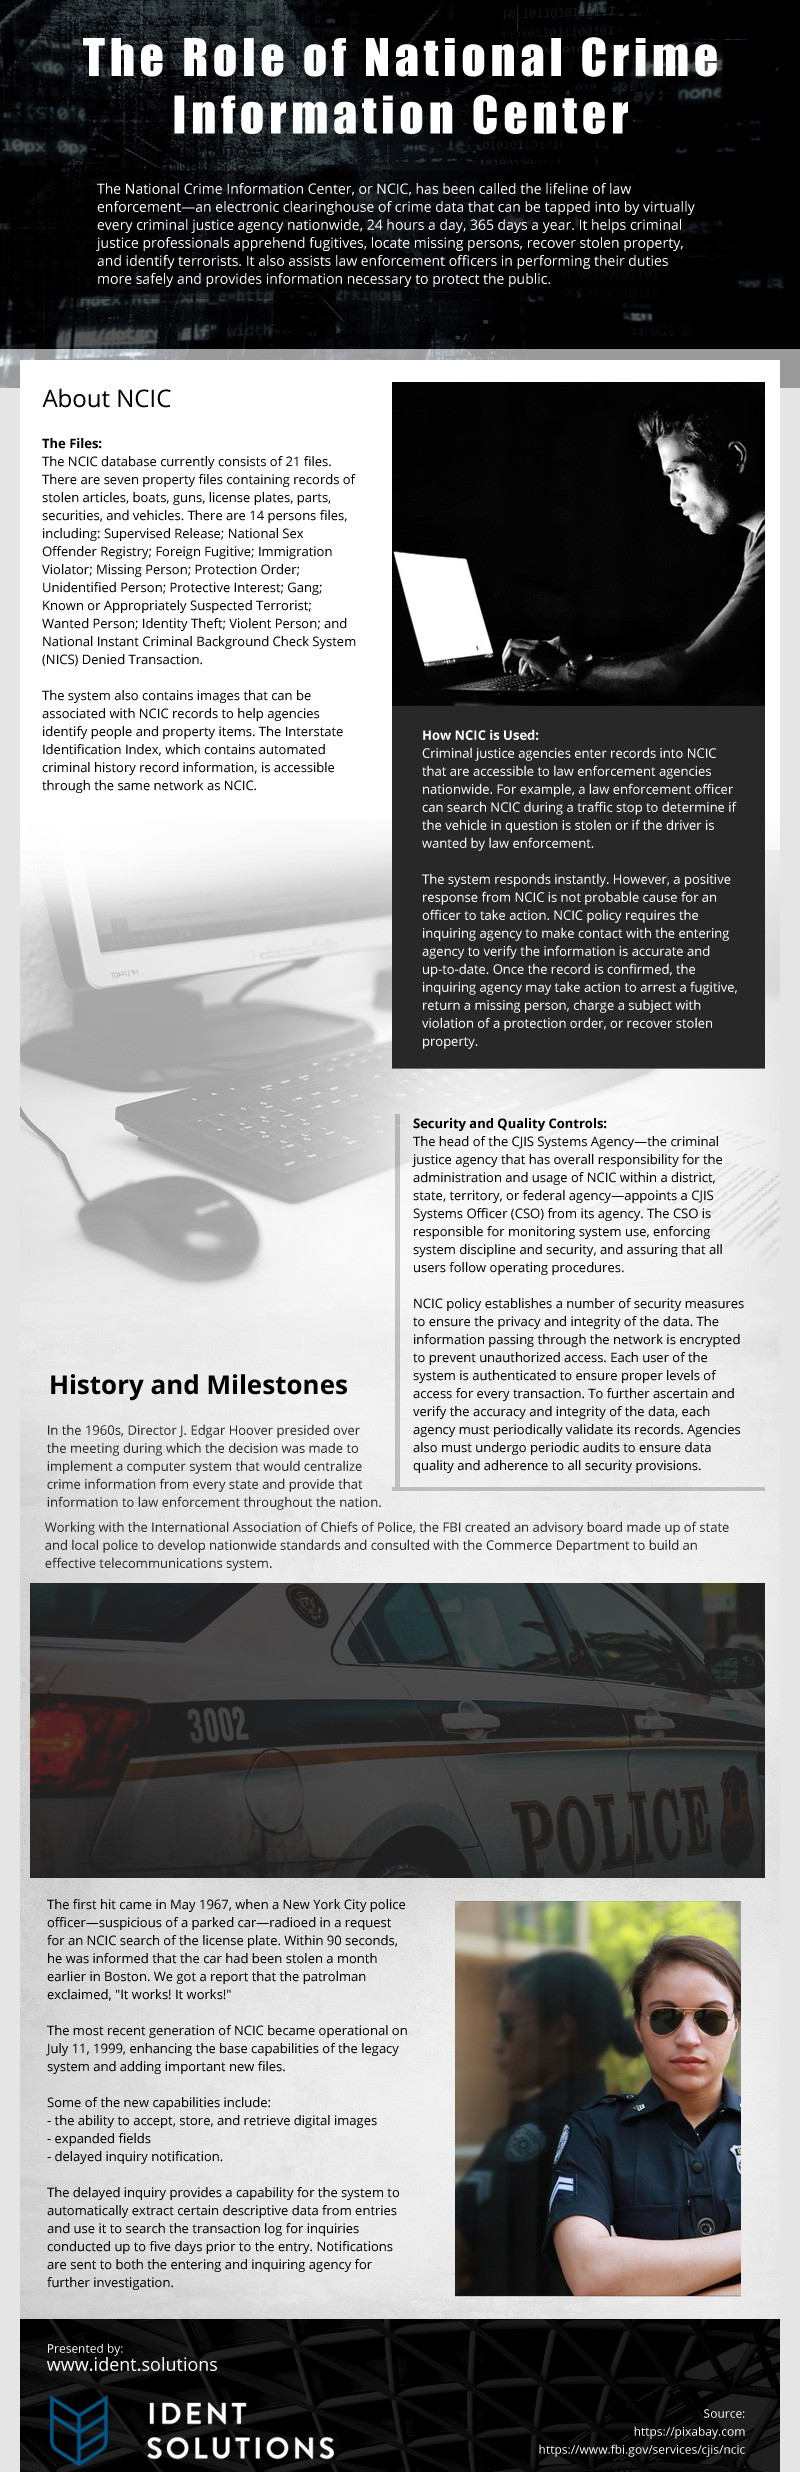 The-Role-of-National-Crime-Information-Center Infographic